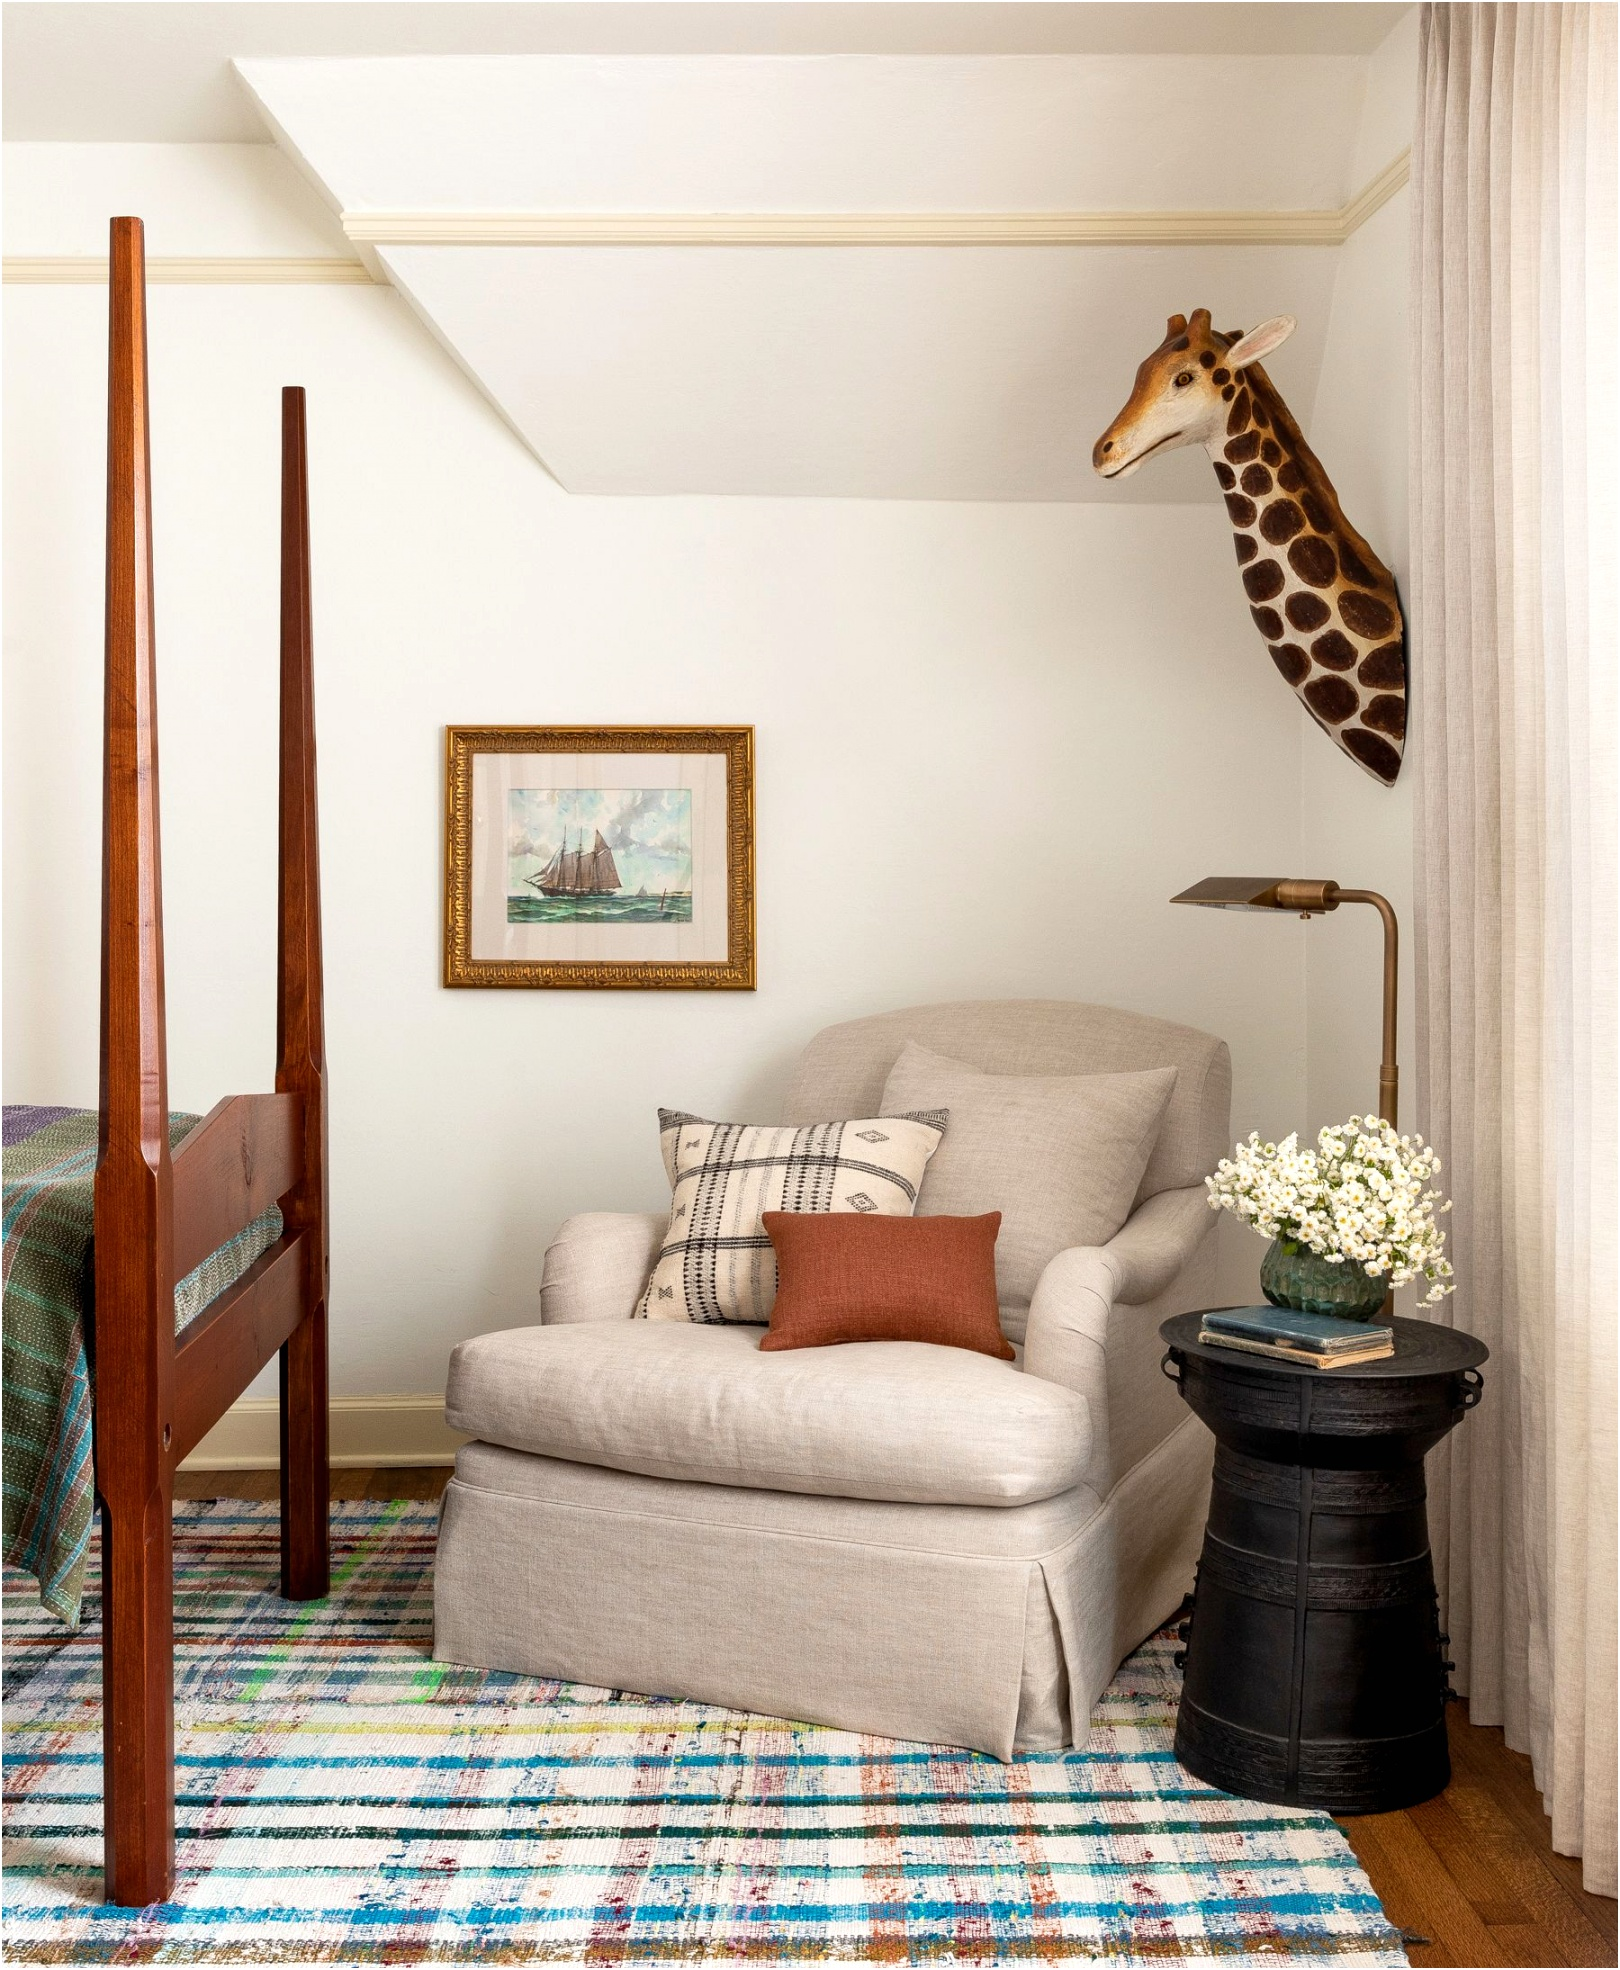 childrens room wall decor heidi caillier design seattle interior designer kids bedroom matching twin beds vintage wood beds plaid rug kantha blankets custom lampshade yellow painted trim 1